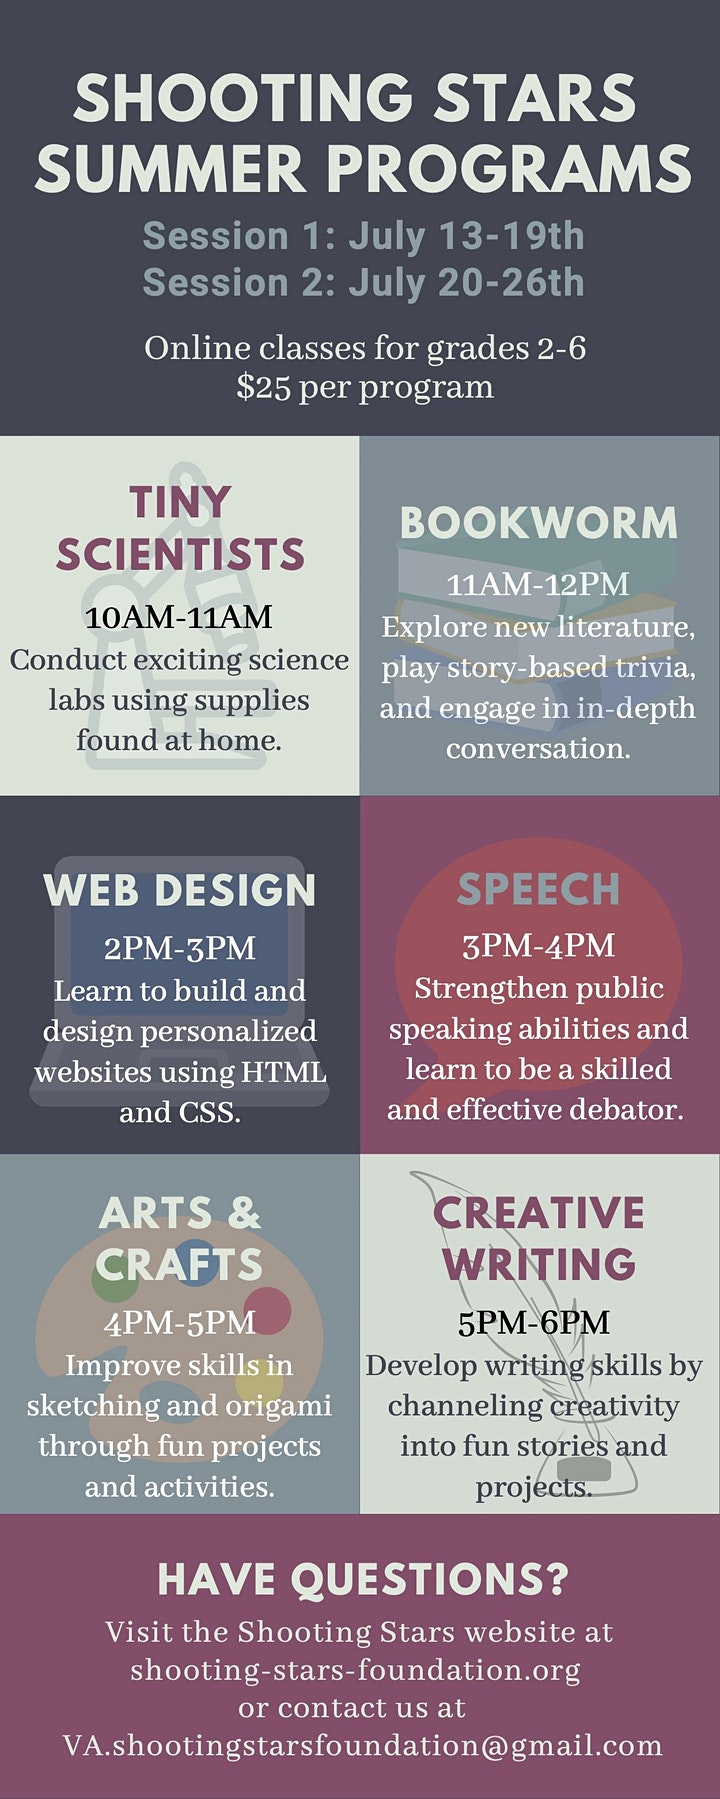 Online Creative Writing Session B July 20th - July 26th image